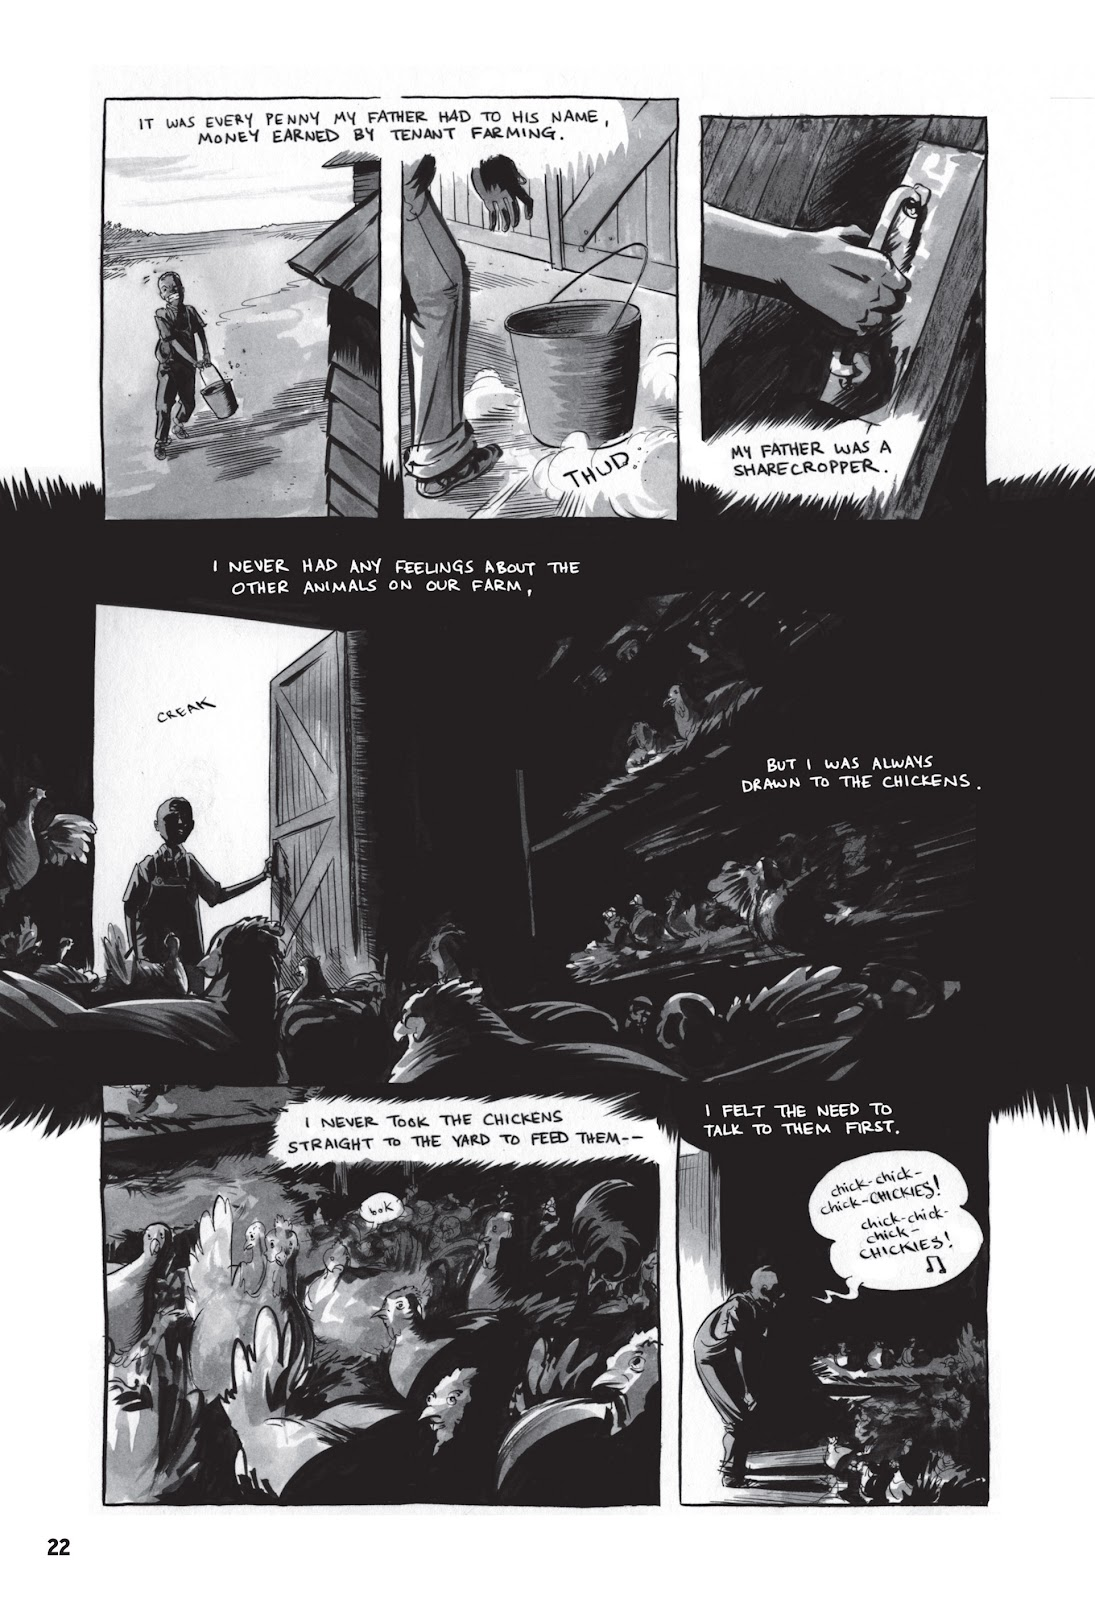 March 1 Page 19